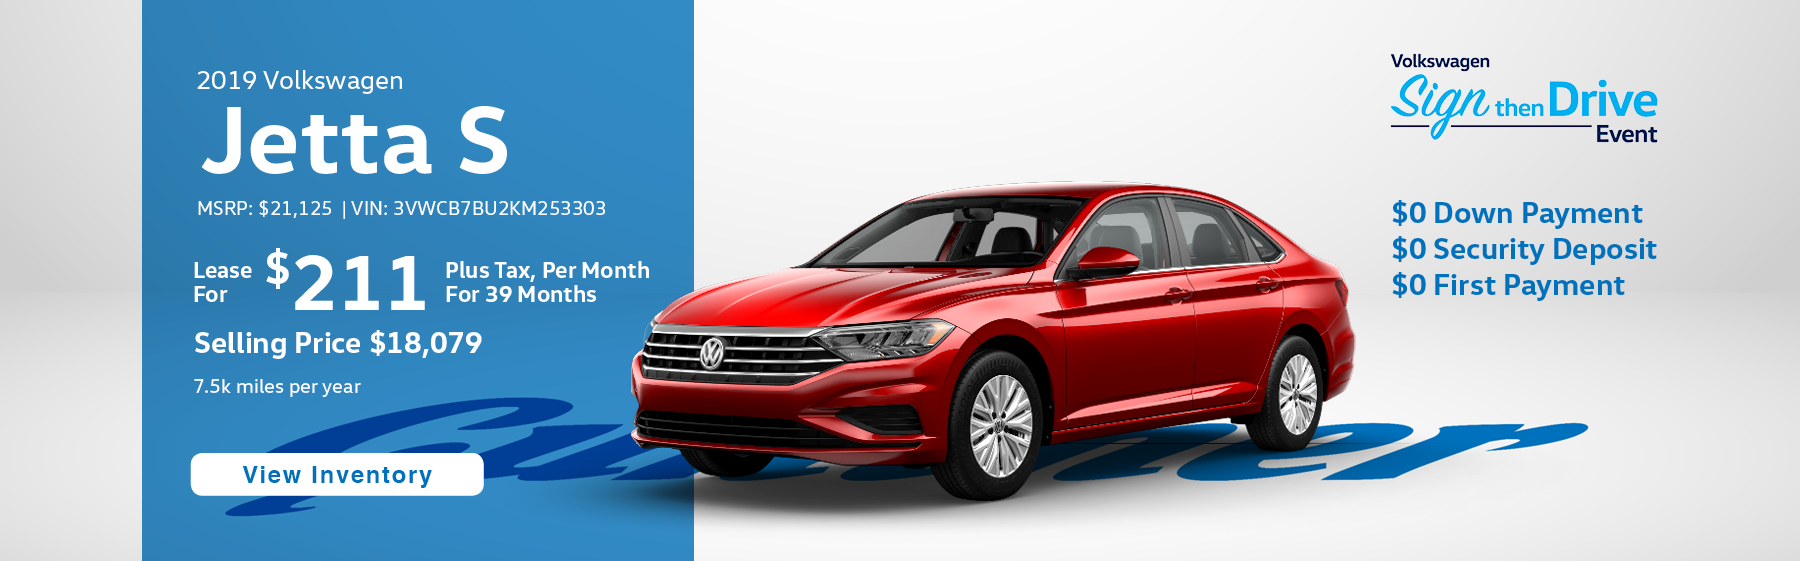 Lease the 2019 Jetta S for $211 per month, plus tax for 39 months.